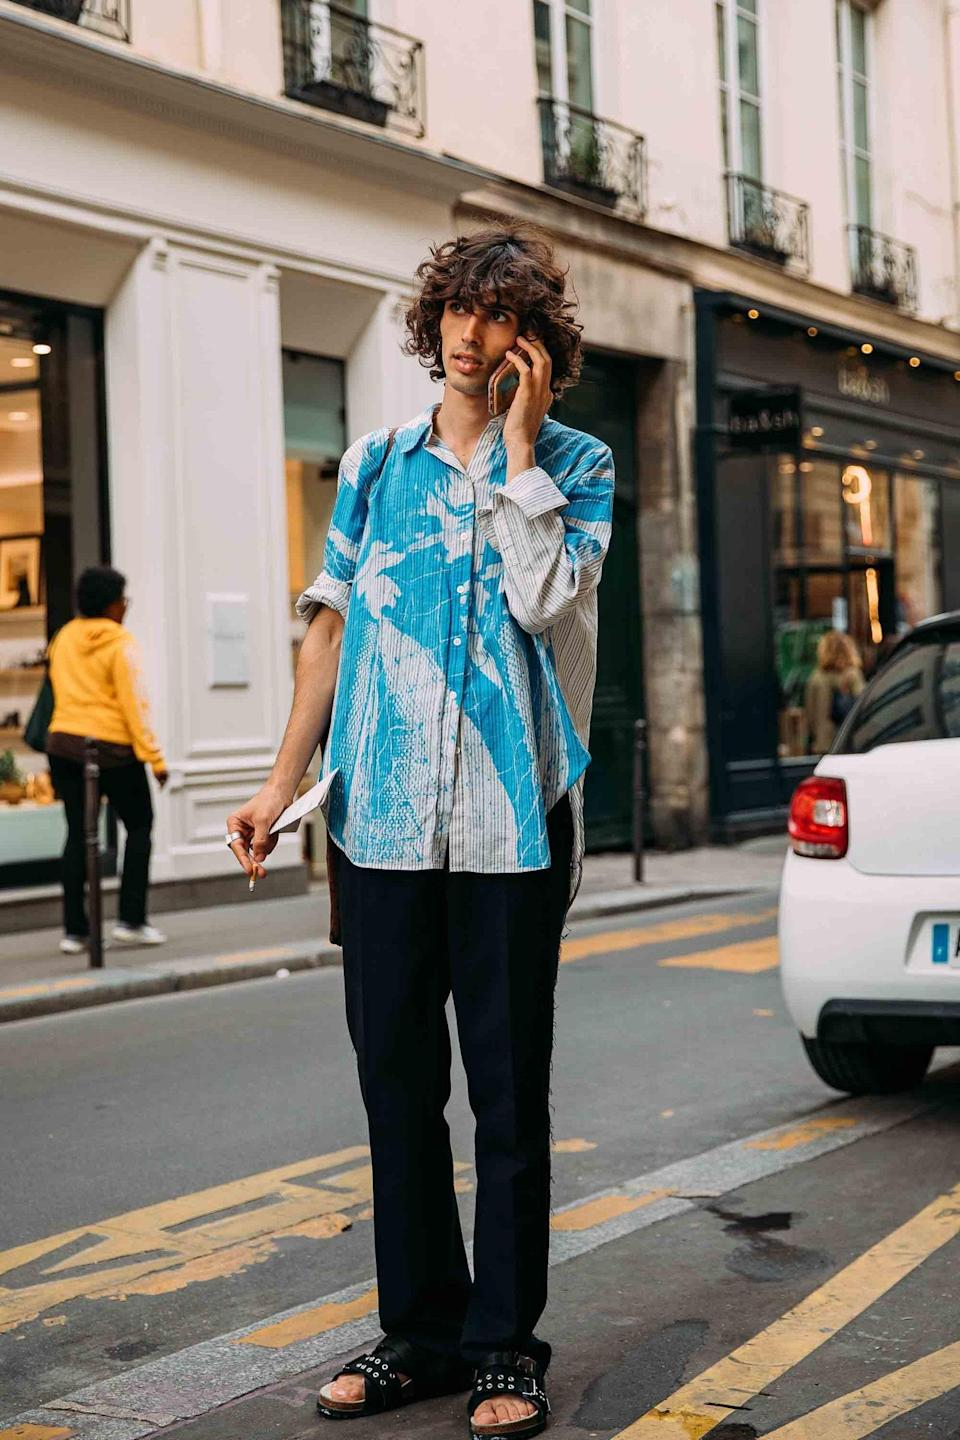 """<cite class=""""credit"""">PHOTOGRAPHY BY <a href=""""https://www.vogue.com/contributor/acielle-style-du-monde?mbid=synd_yahoo_rss"""" rel=""""nofollow noopener"""" target=""""_blank"""" data-ylk=""""slk:ACIELLE / STYLE DU MONDE"""" class=""""link rapid-noclick-resp"""">ACIELLE / STYLE DU MONDE</a></cite>"""